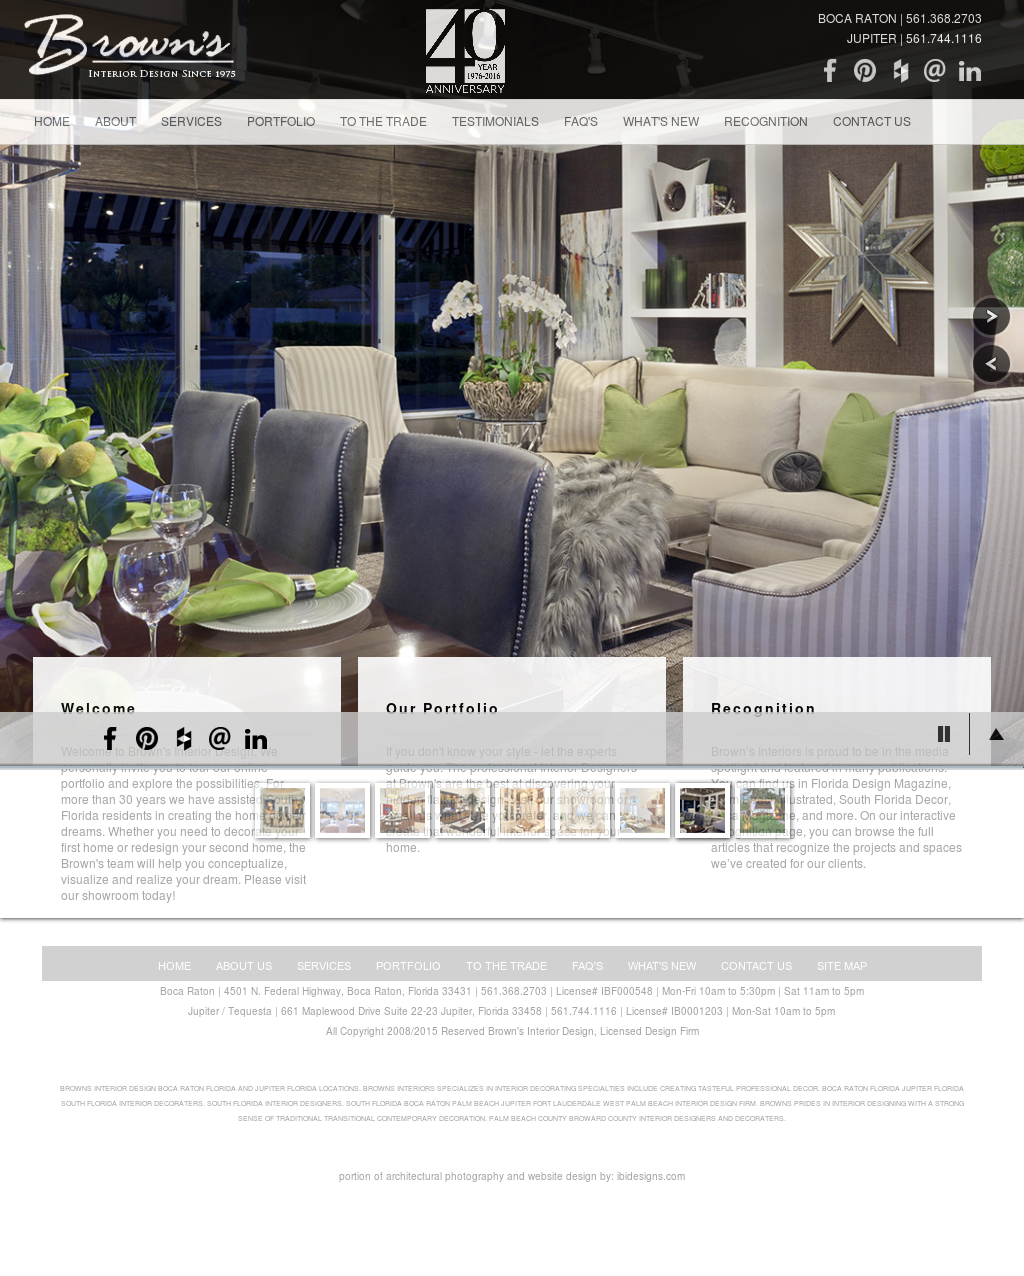 Florida Design Magazine Wfnhfo Browns Interior Competitors Revenue And Employees Owler Company Website History With South